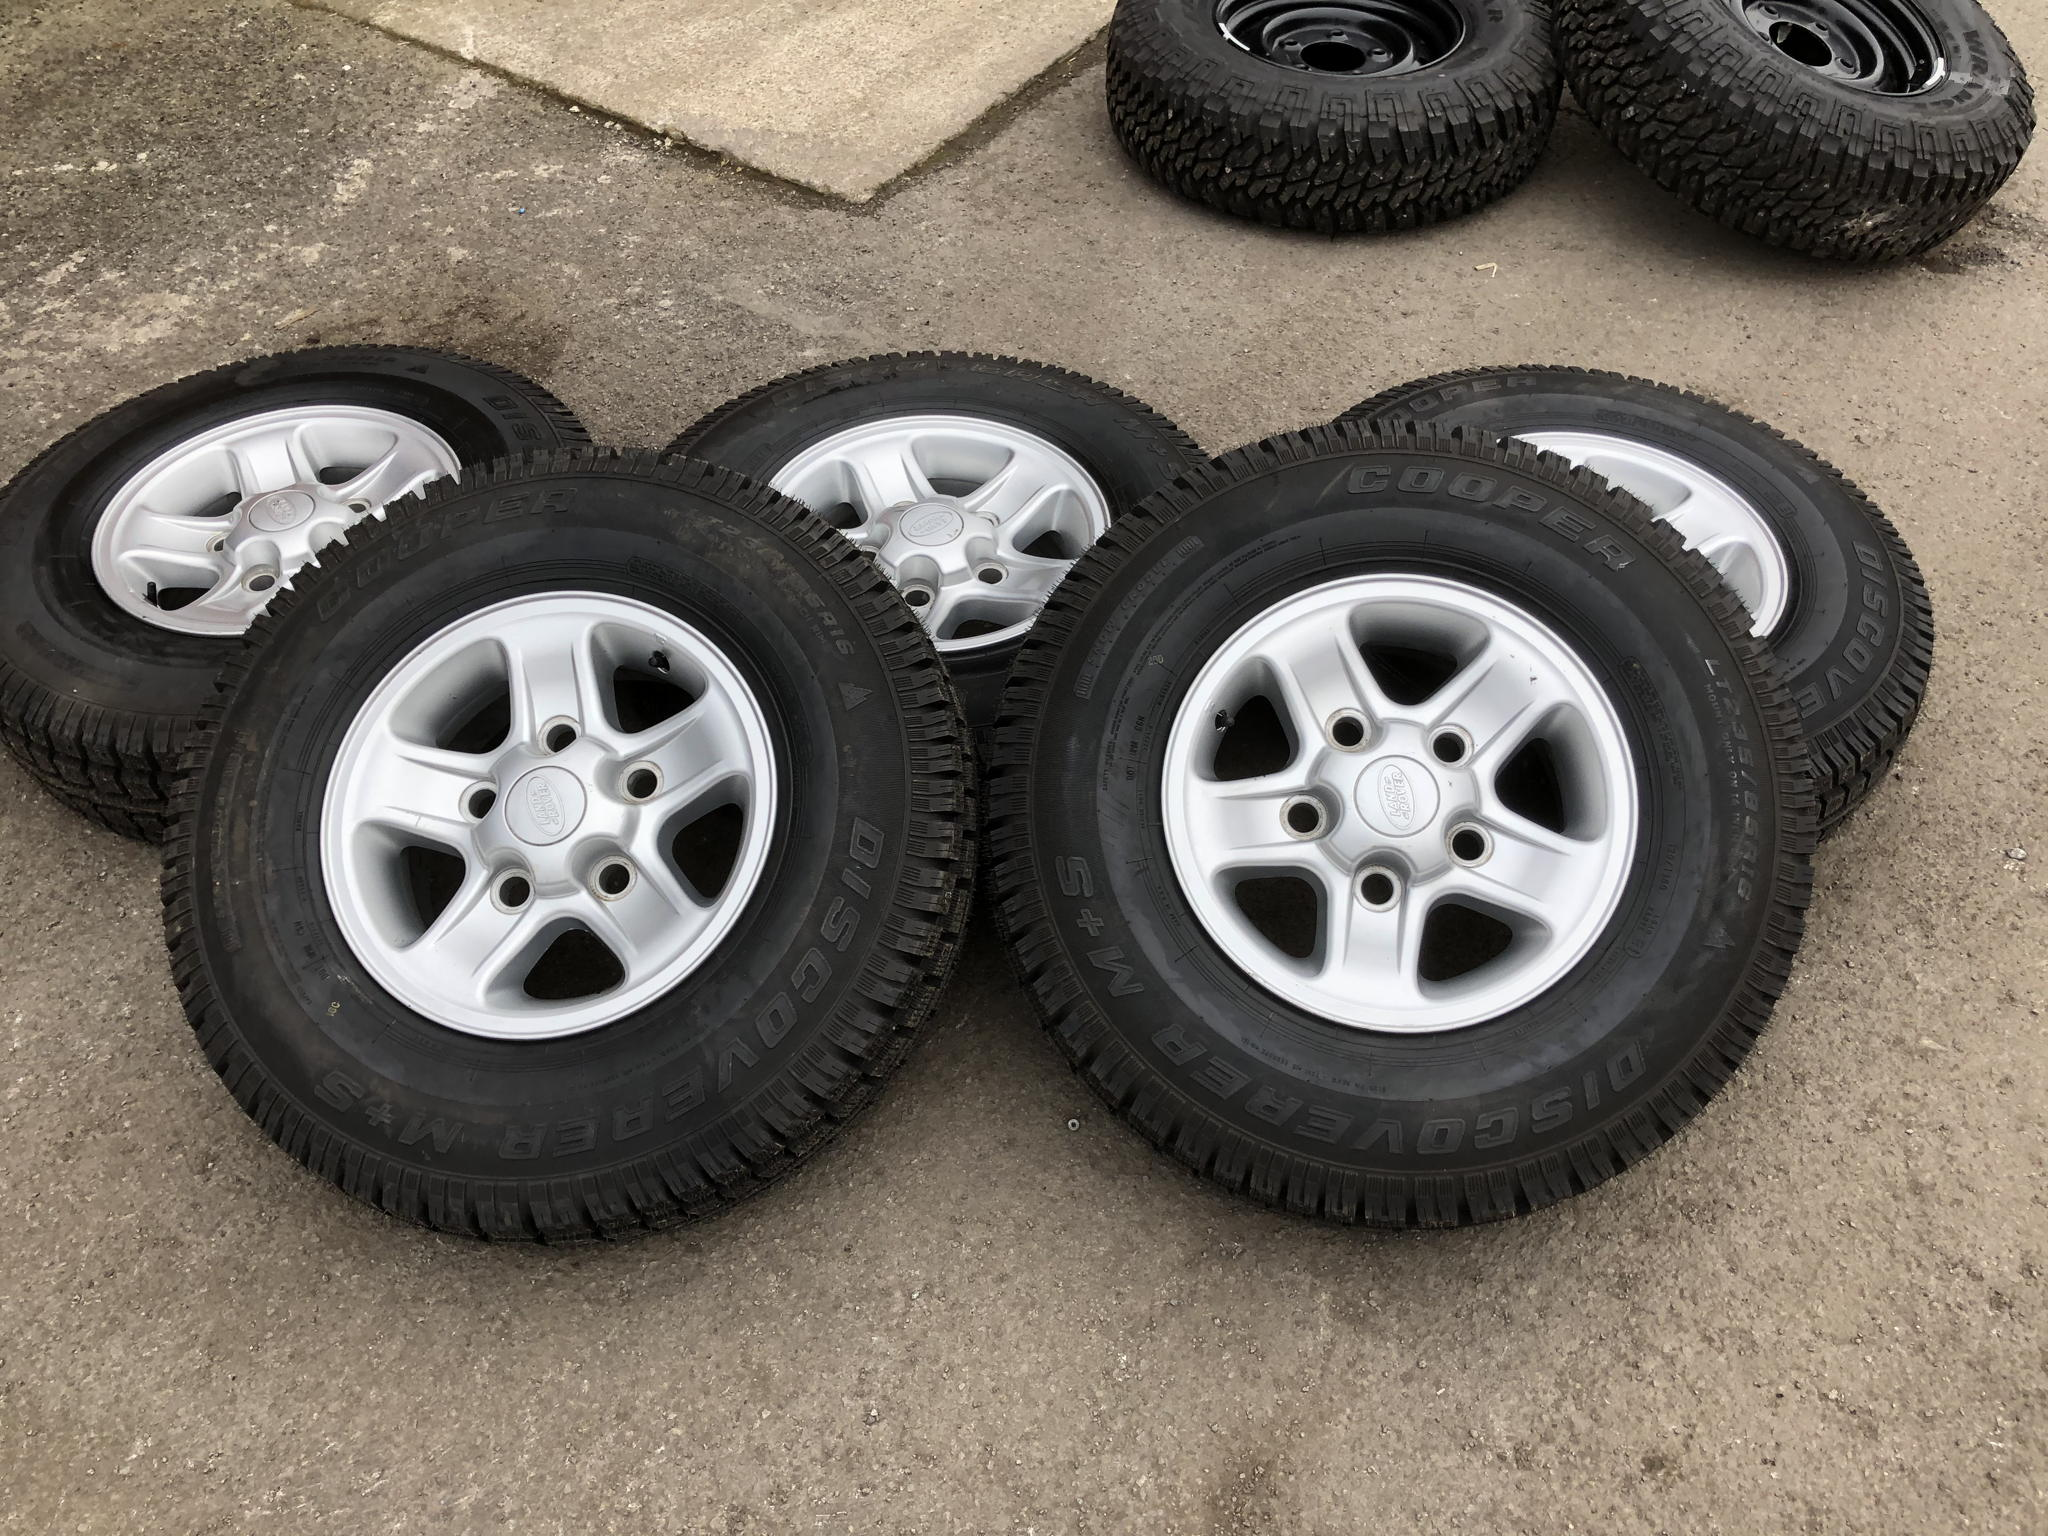 GENUINE BOOST ALLOY WHEELS AND COOPER DISCOVERER TYRES's featured image